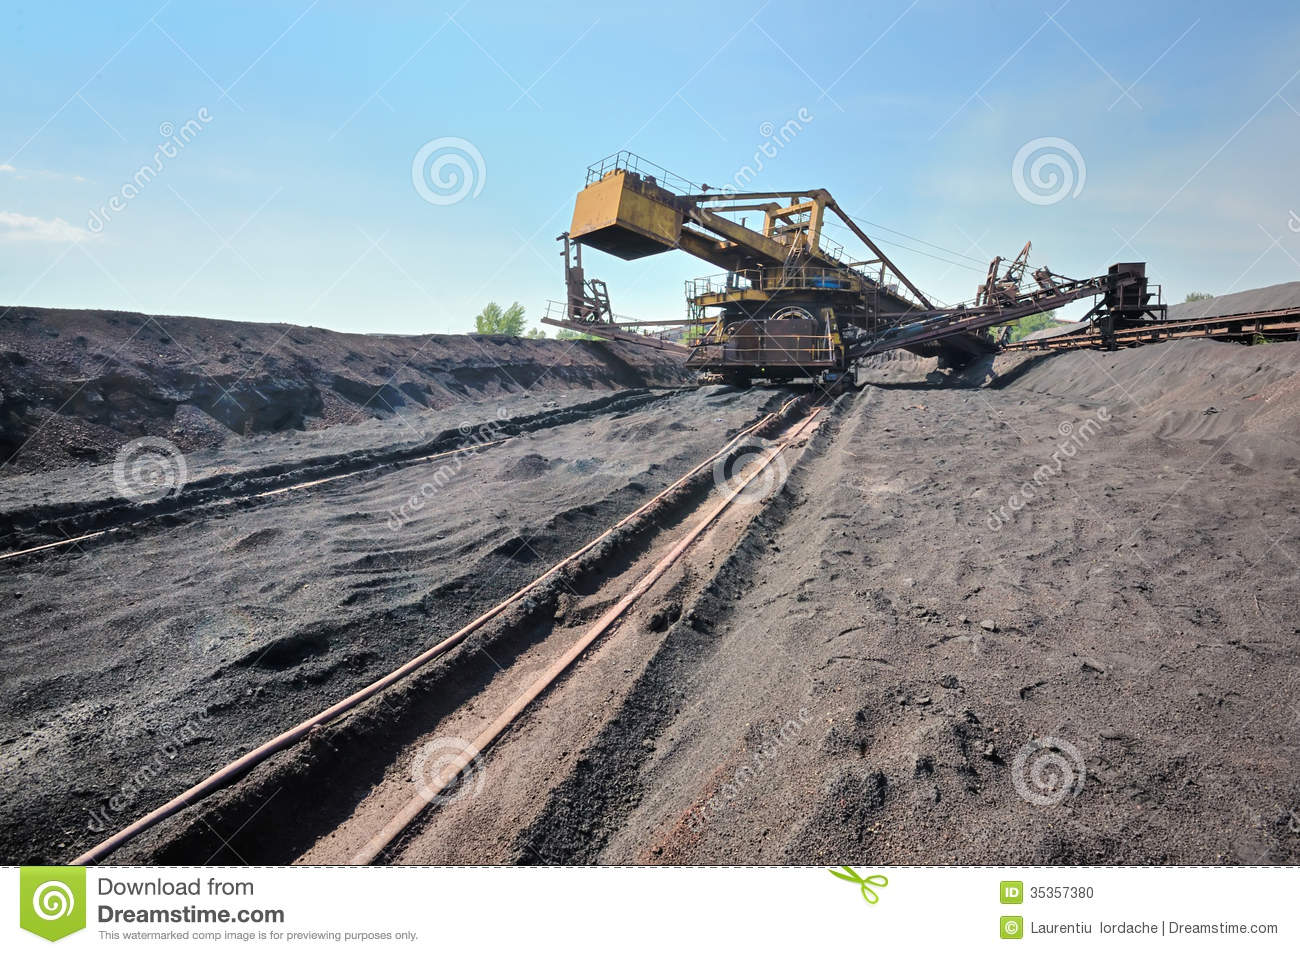 Bucket Wheel Excavator Stock Photo.